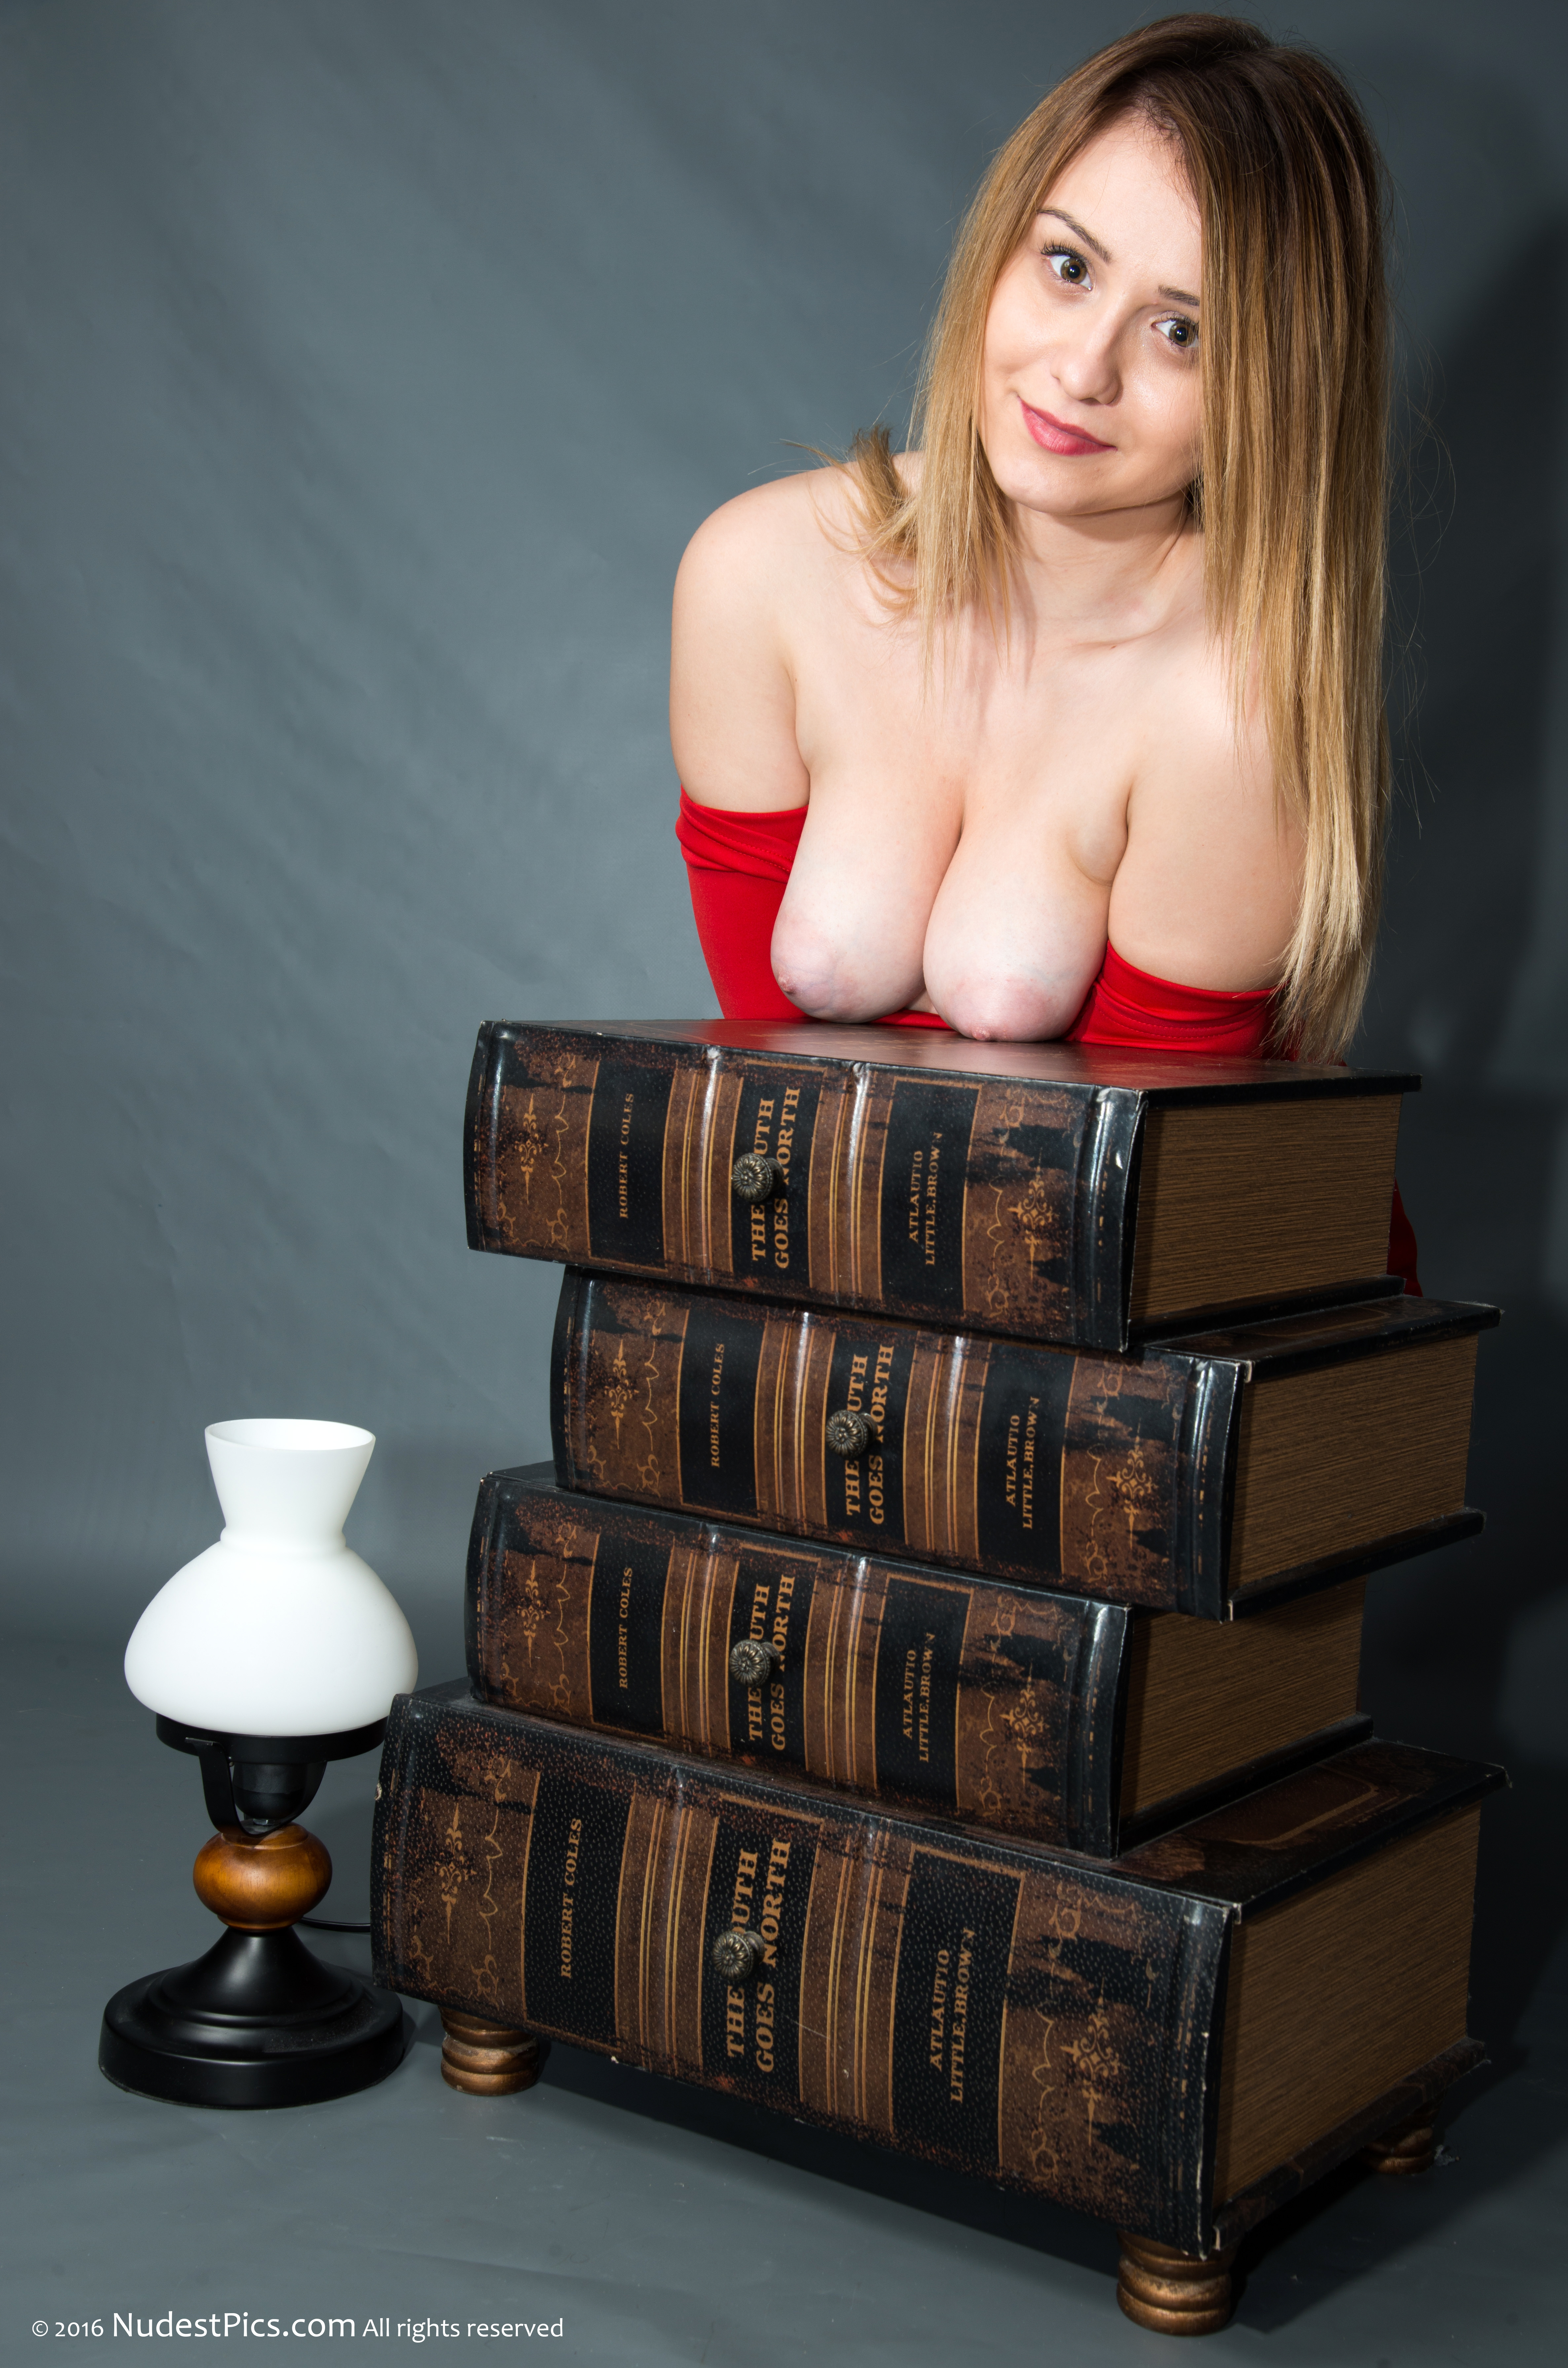 Beautiful Blonde Turkish Girl Big Tits Out at Desk